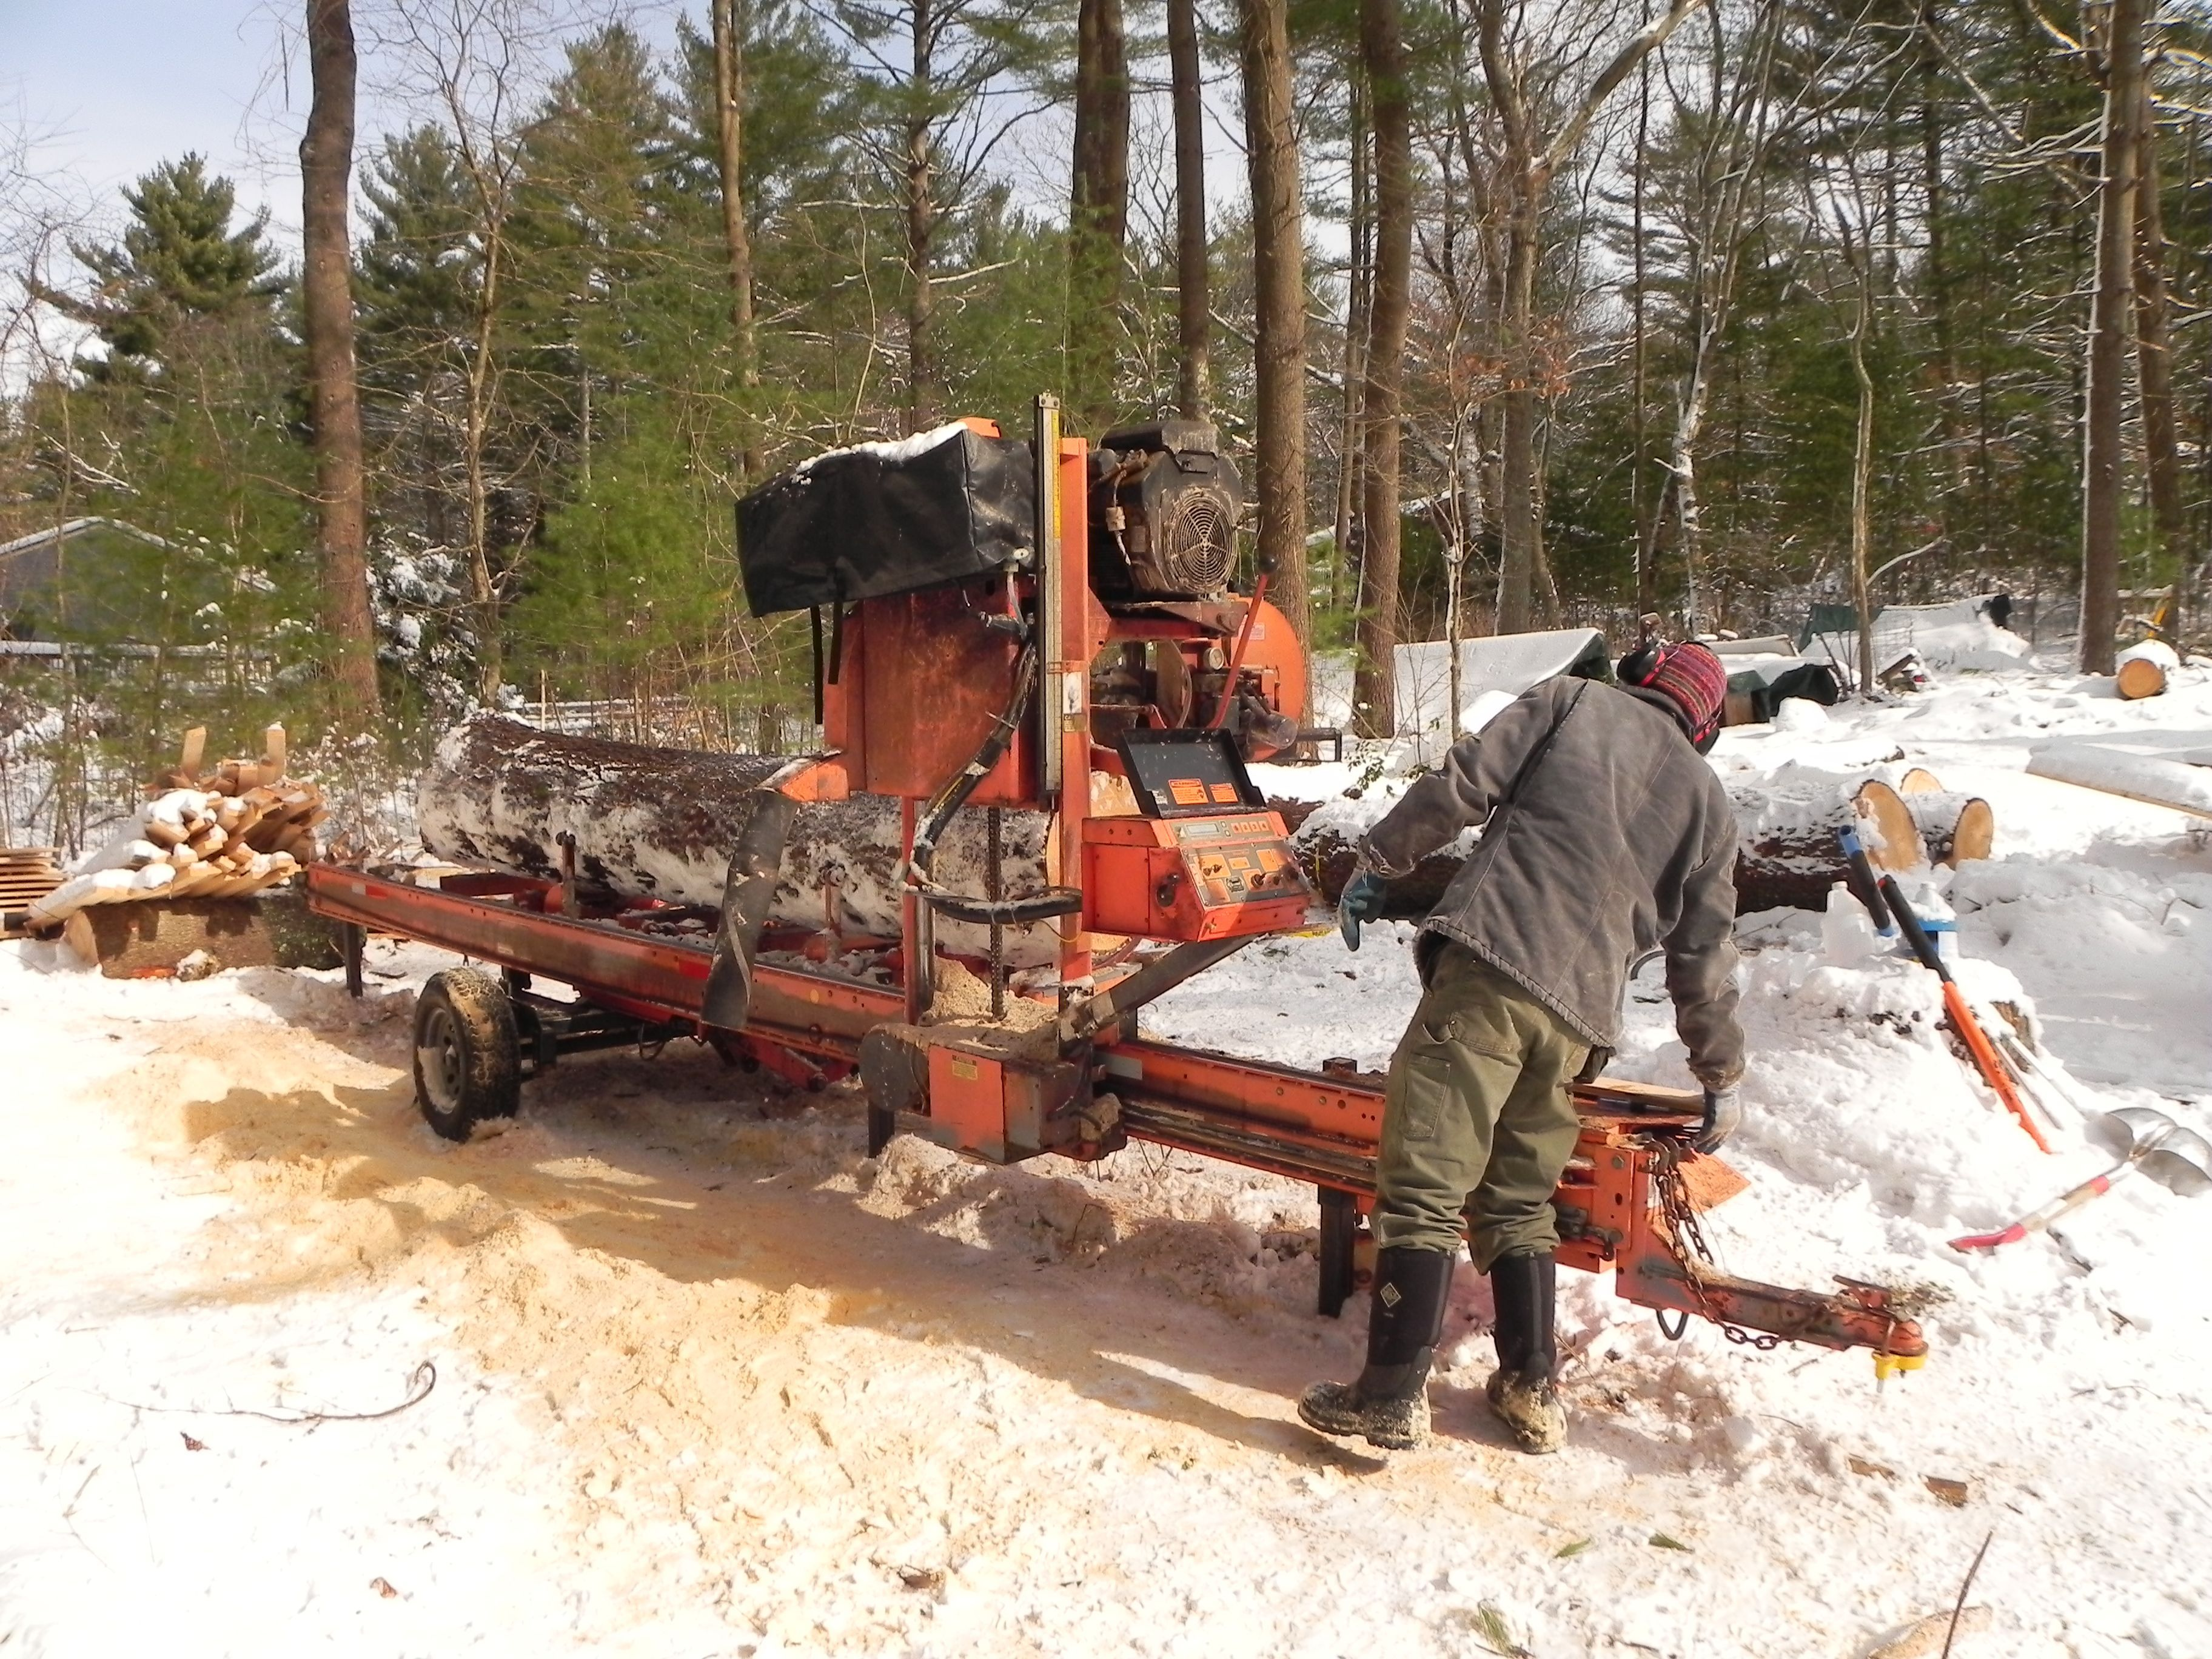 Portable sawmill at work in the snow.